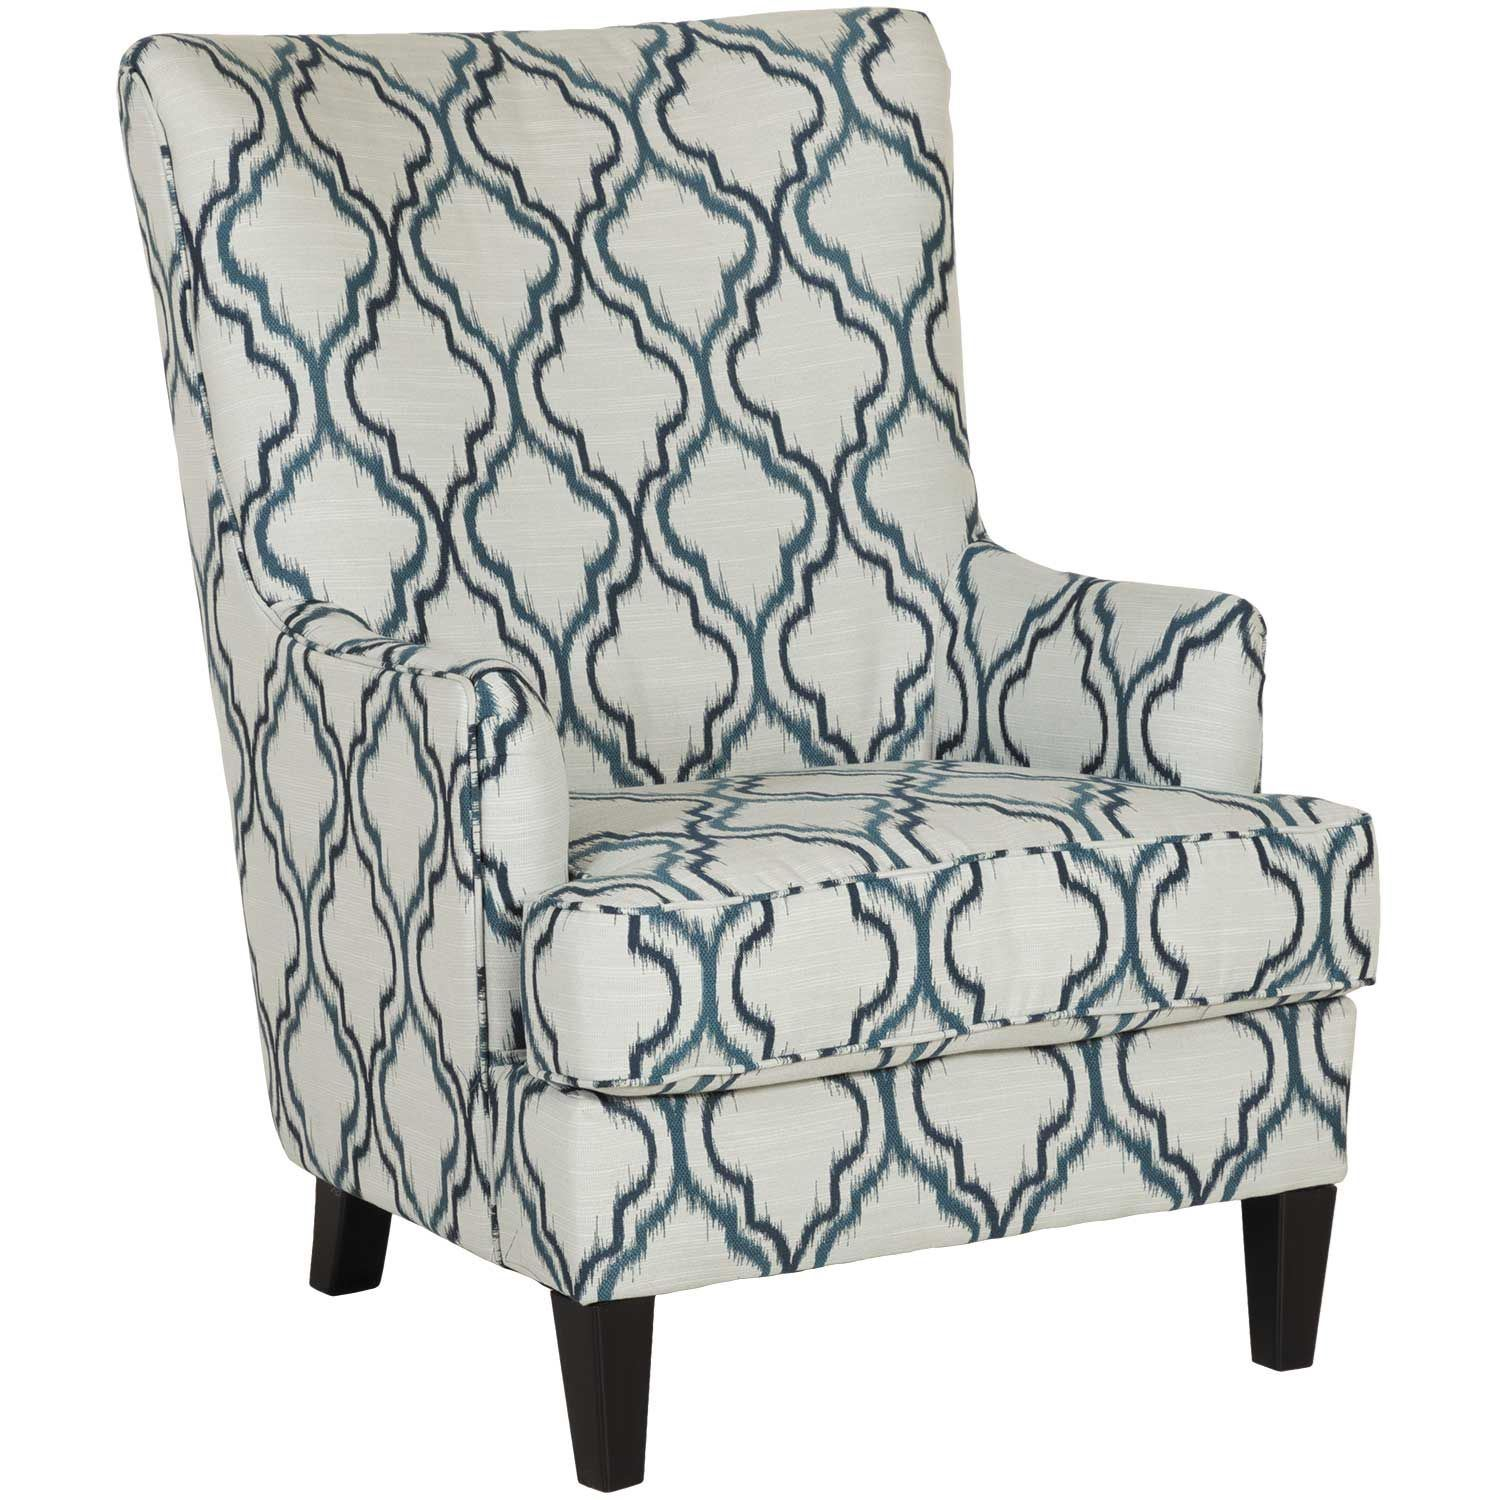 Enjoyable Lavernia Indigo Accent Chair Gmtry Best Dining Table And Chair Ideas Images Gmtryco